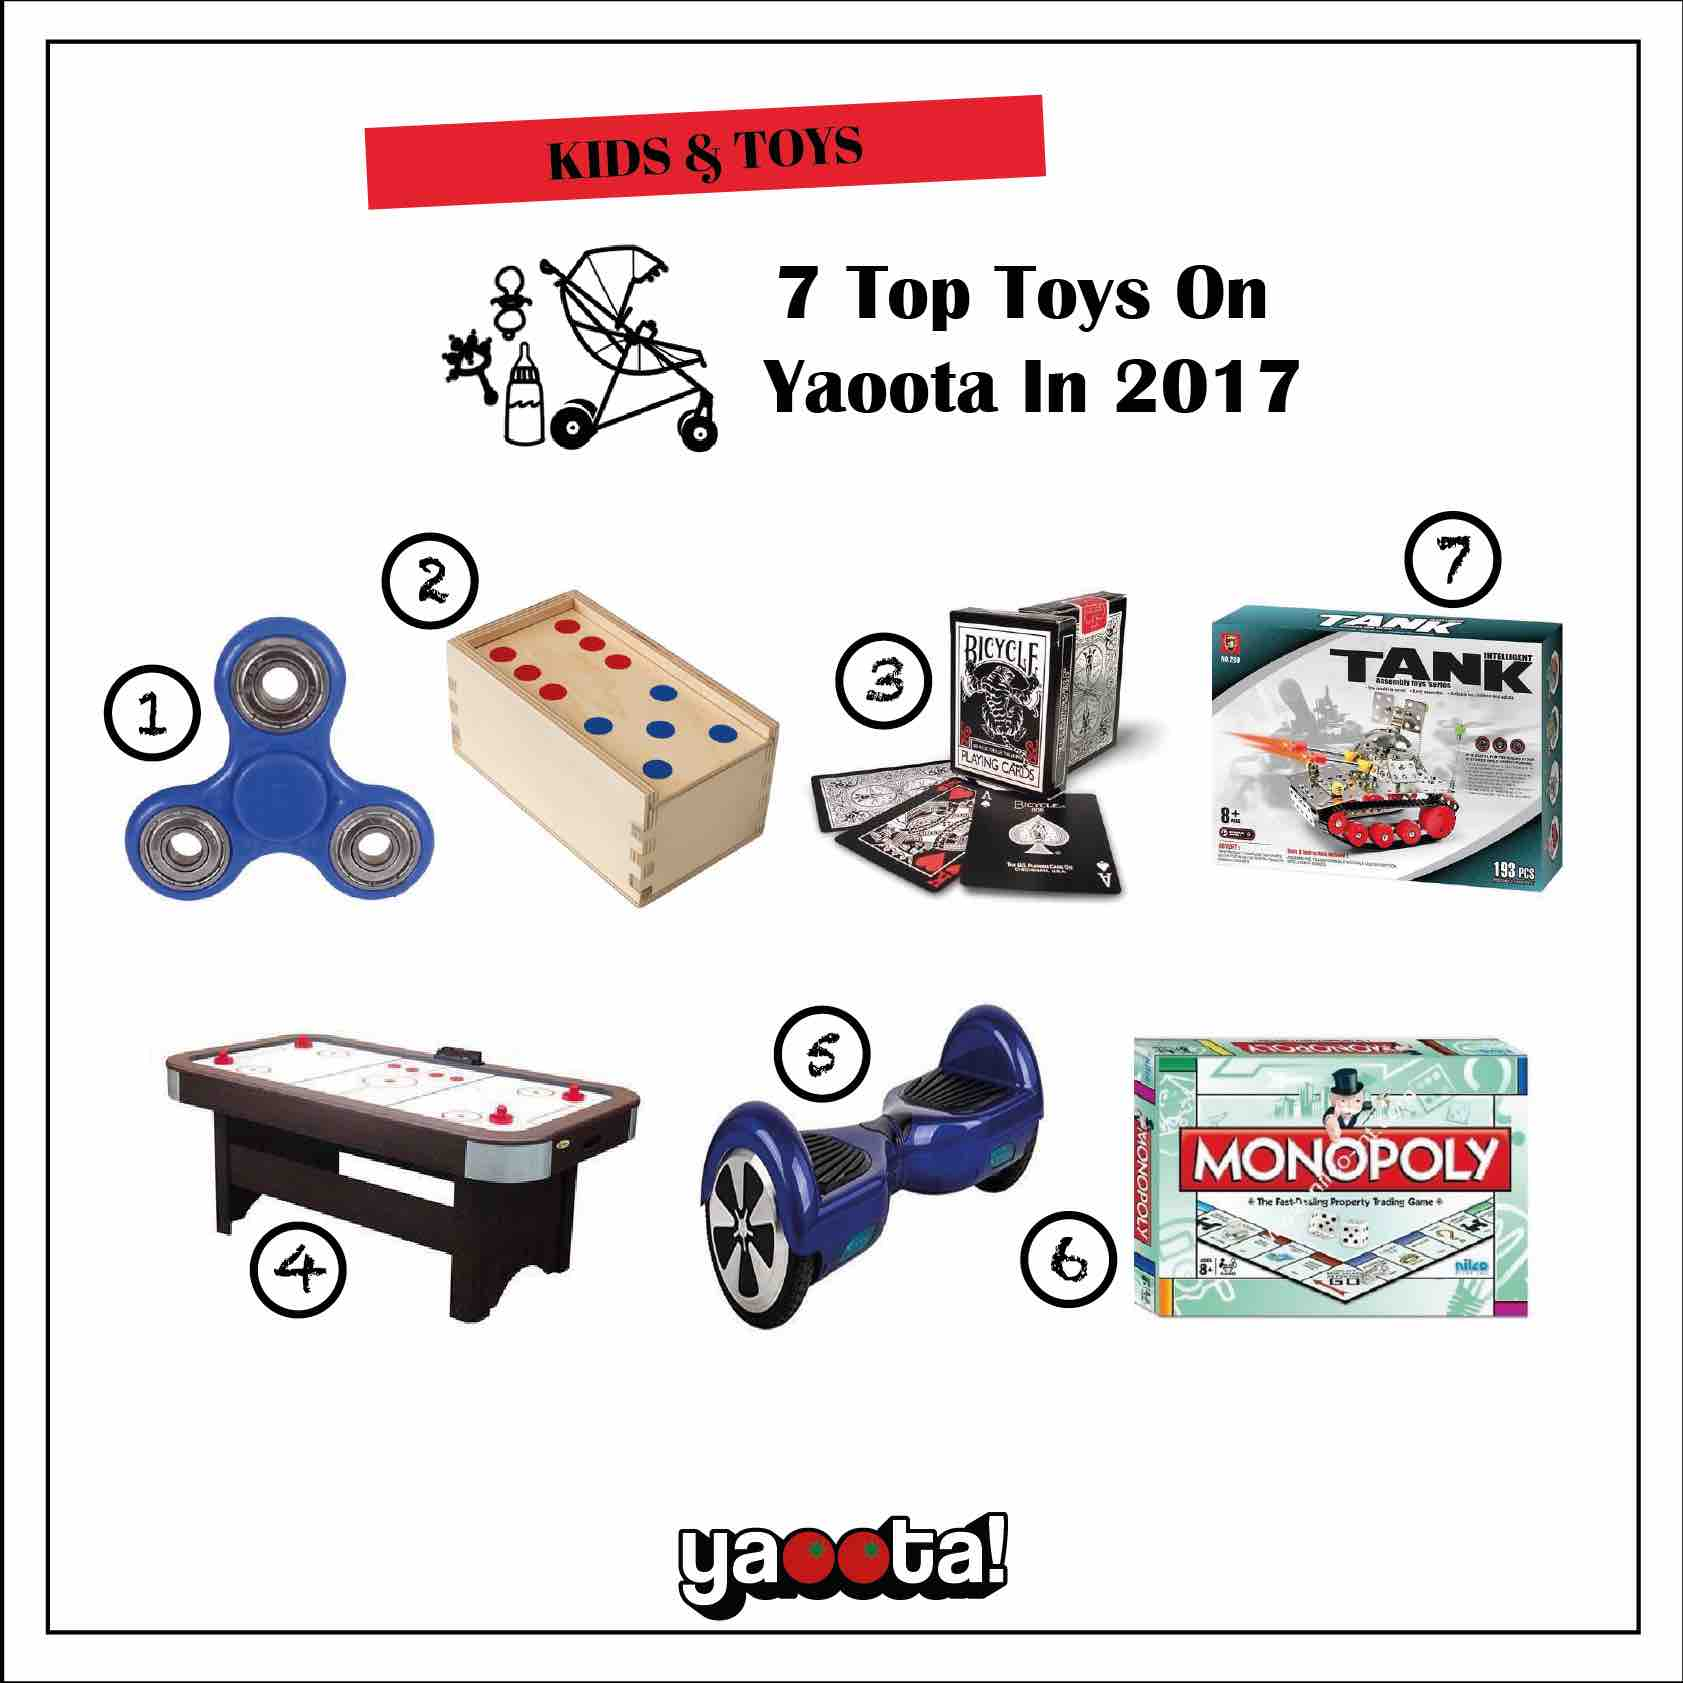 The 10 Most Desired Toys By Children